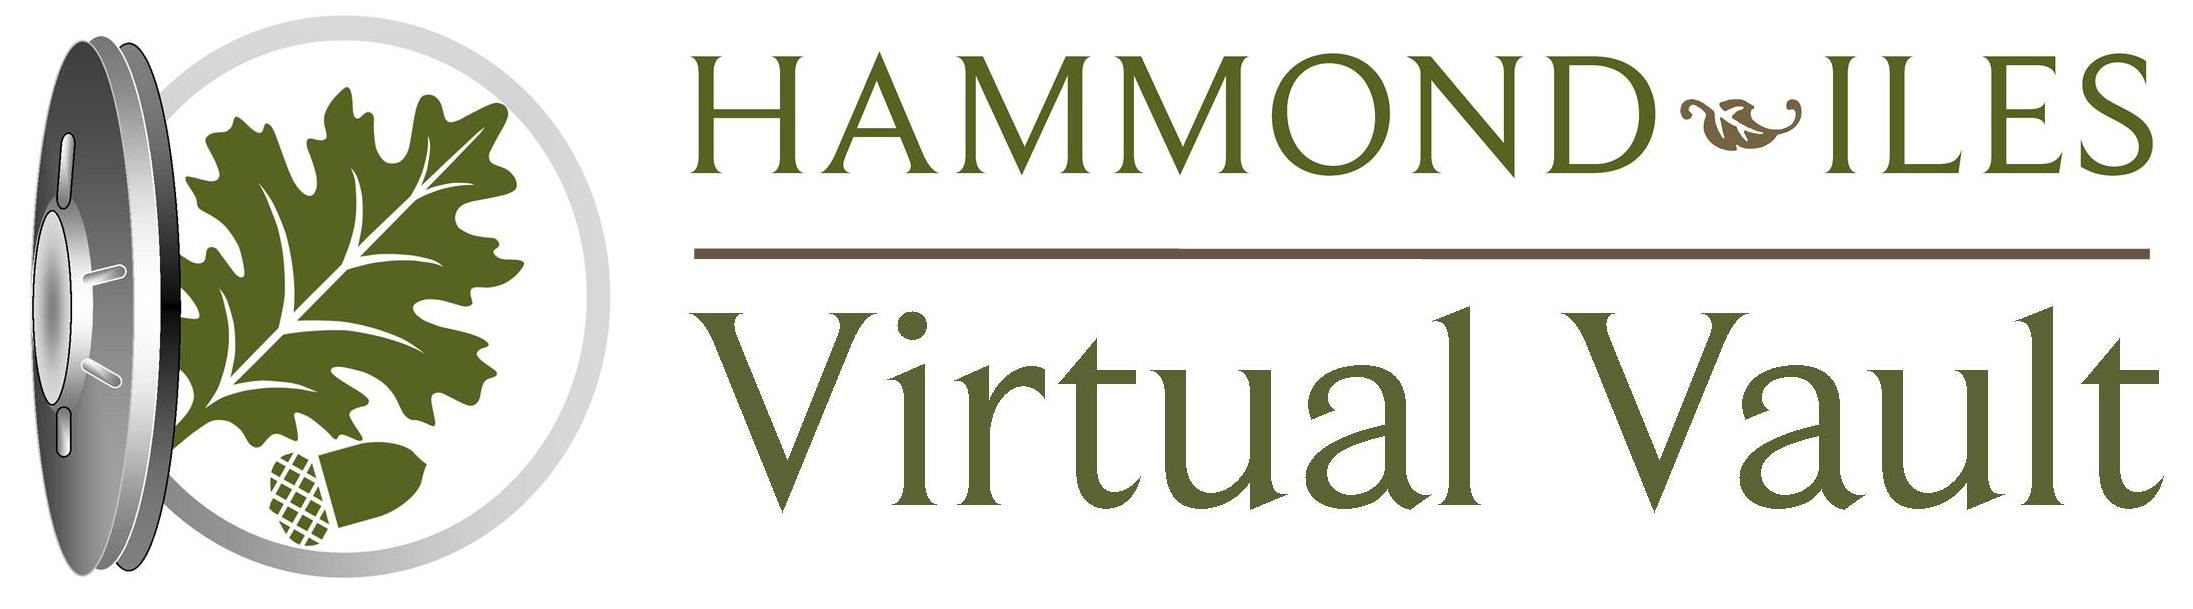 Hammond Iles Wealth Advisors Virtual Vault